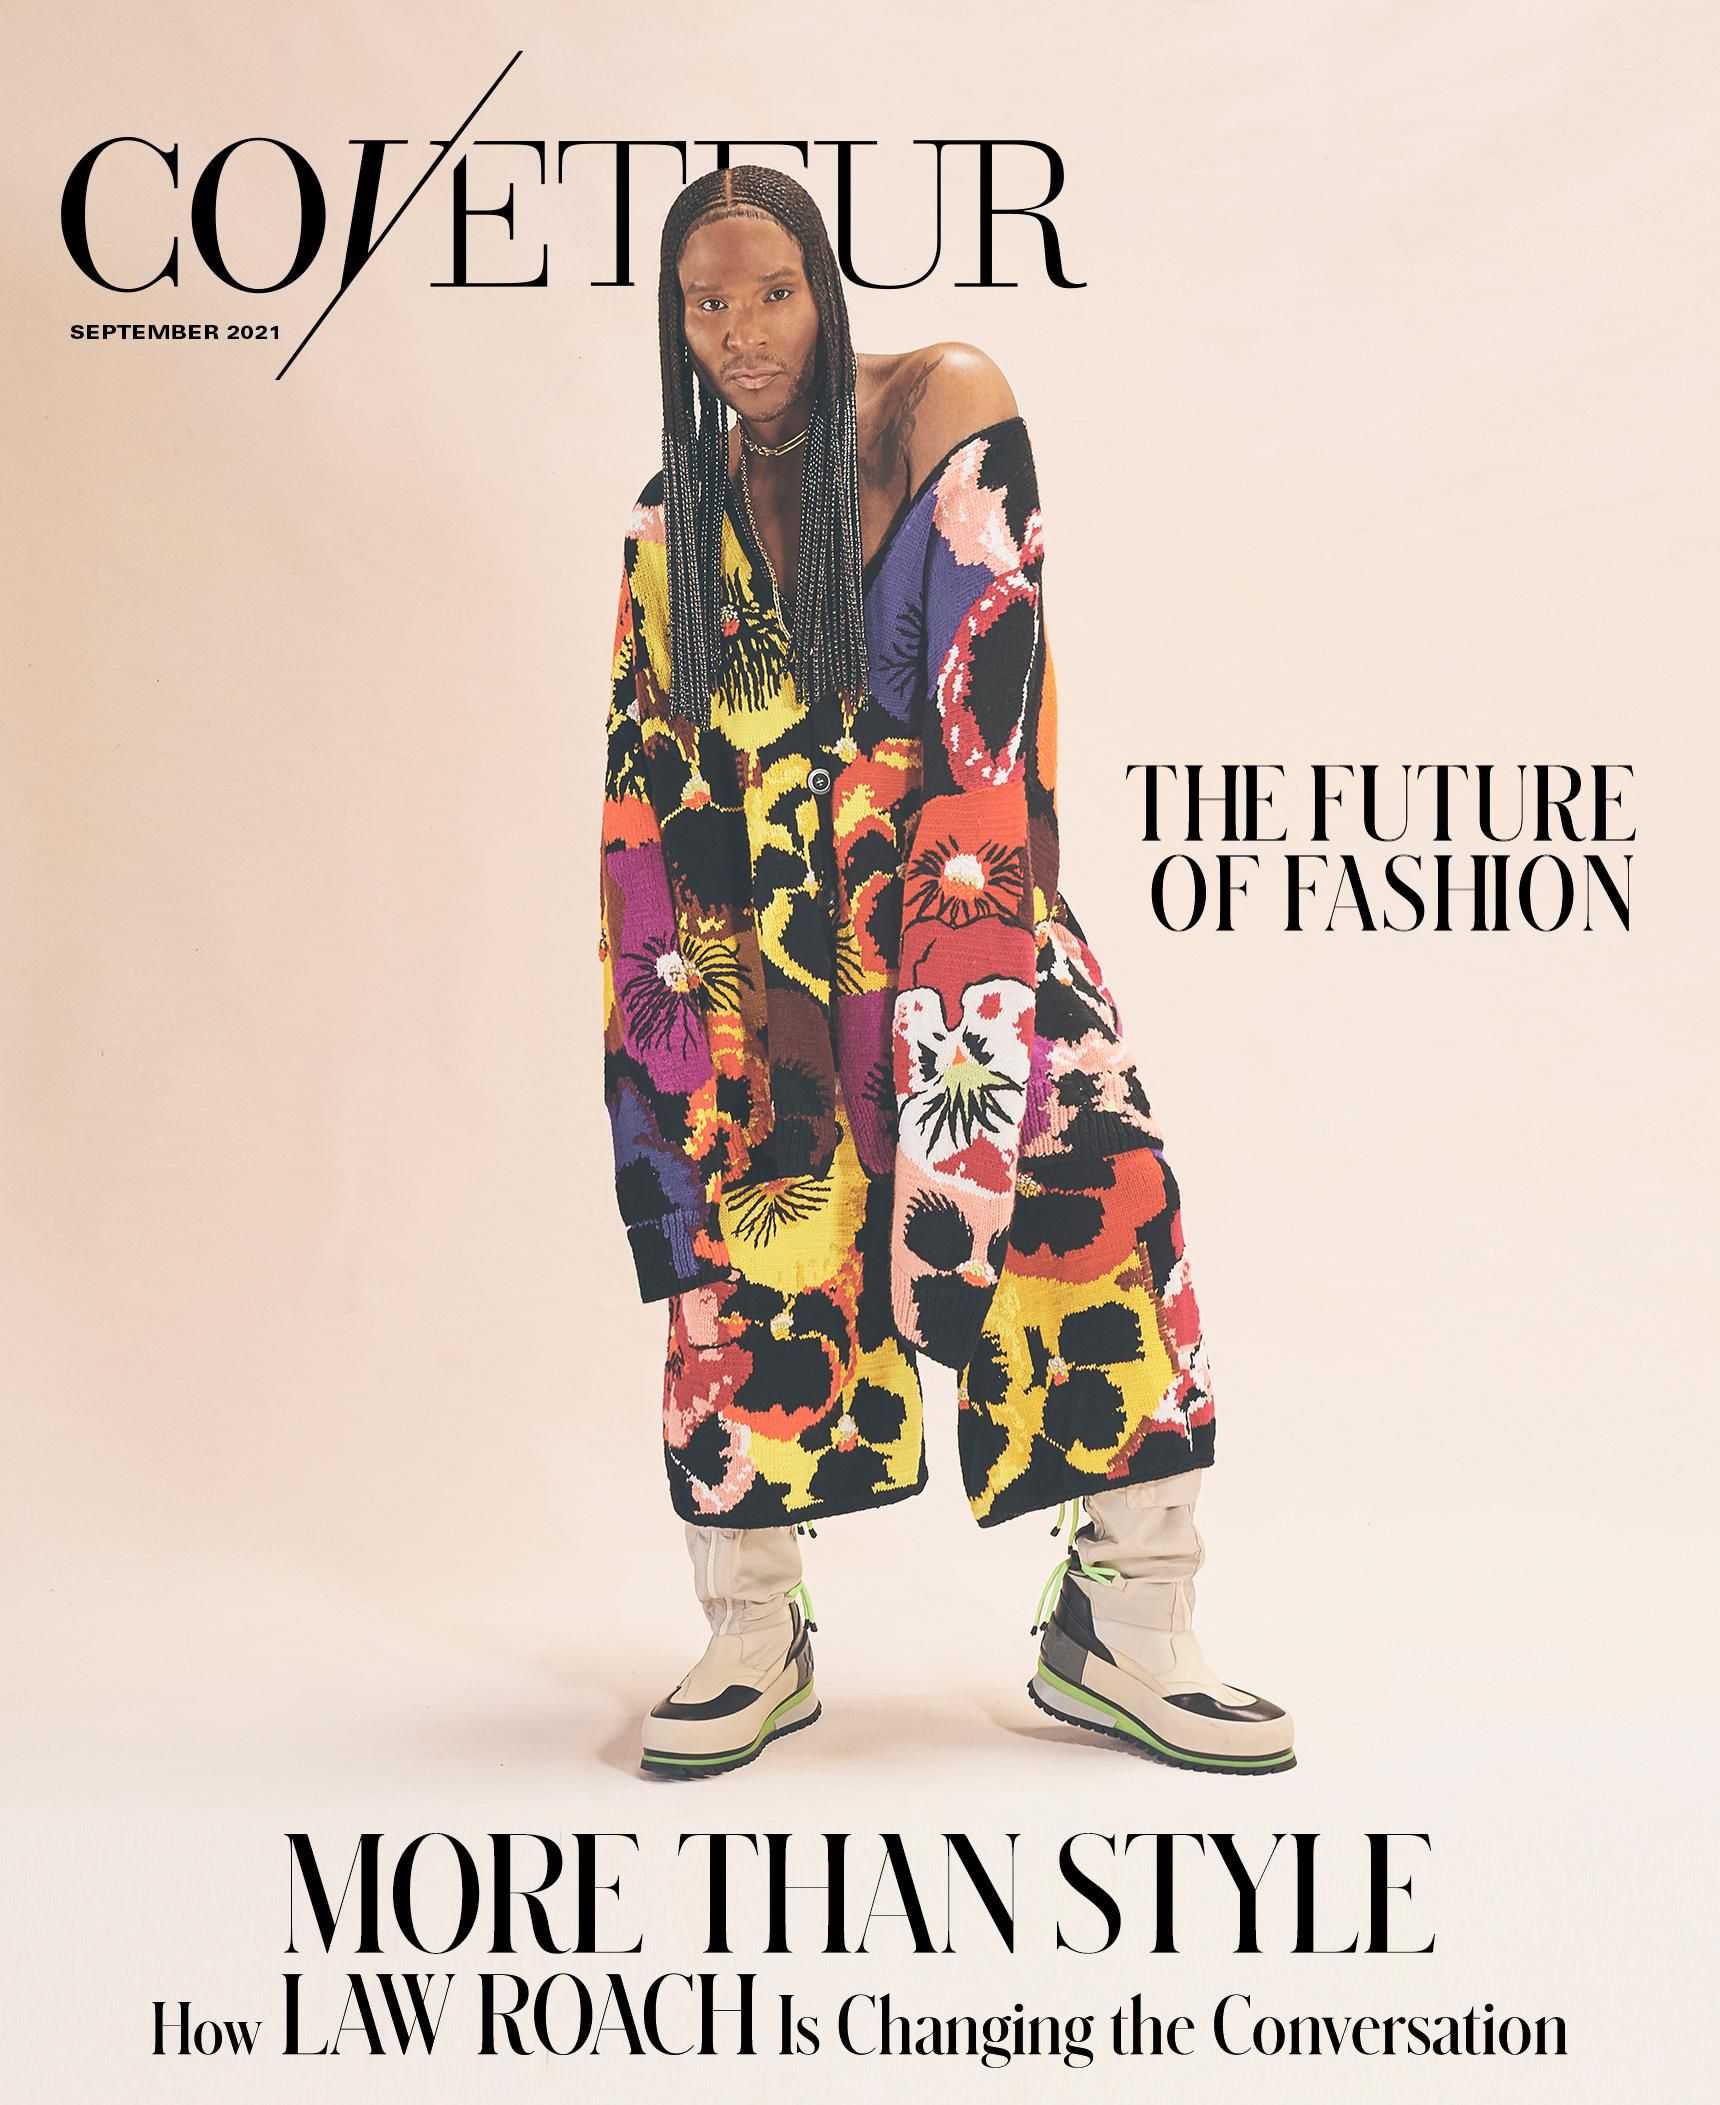 Read our cover story on iconic stylist Law Roach